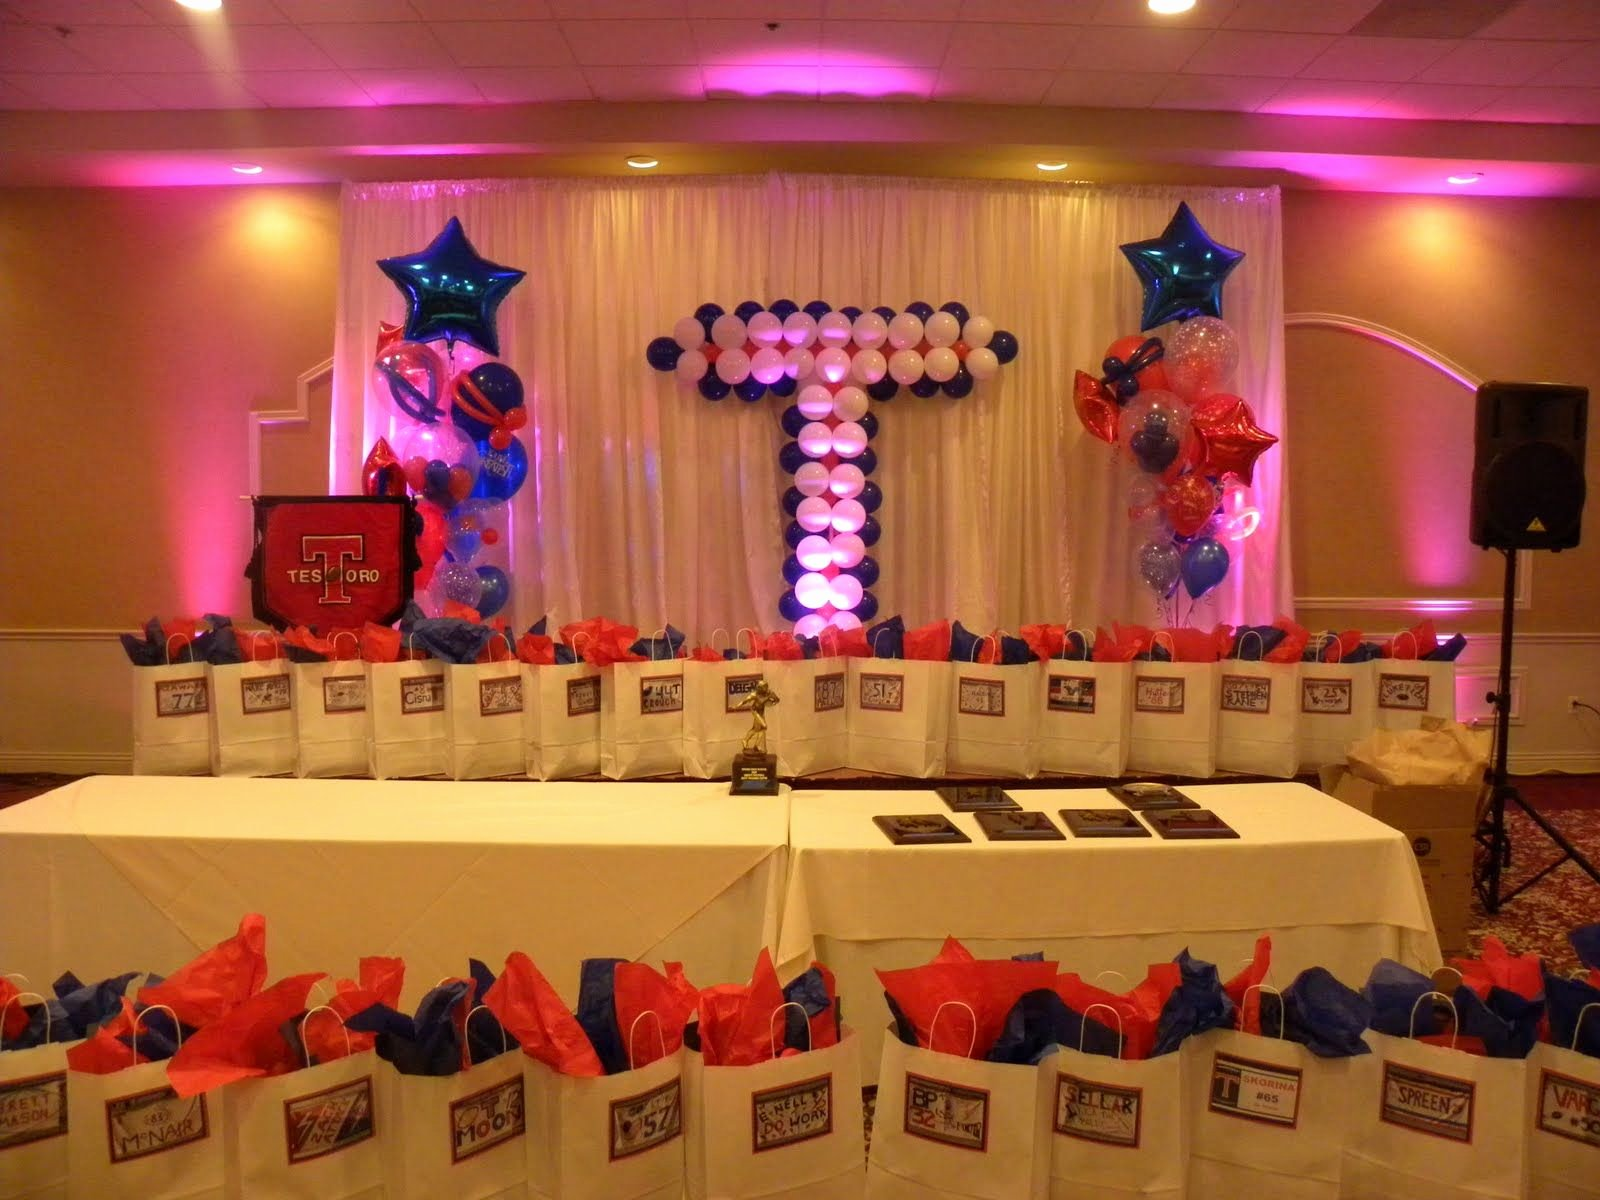 Dance Team Banquet Award Ideas Elegant Home Ing or Banquet Decorations